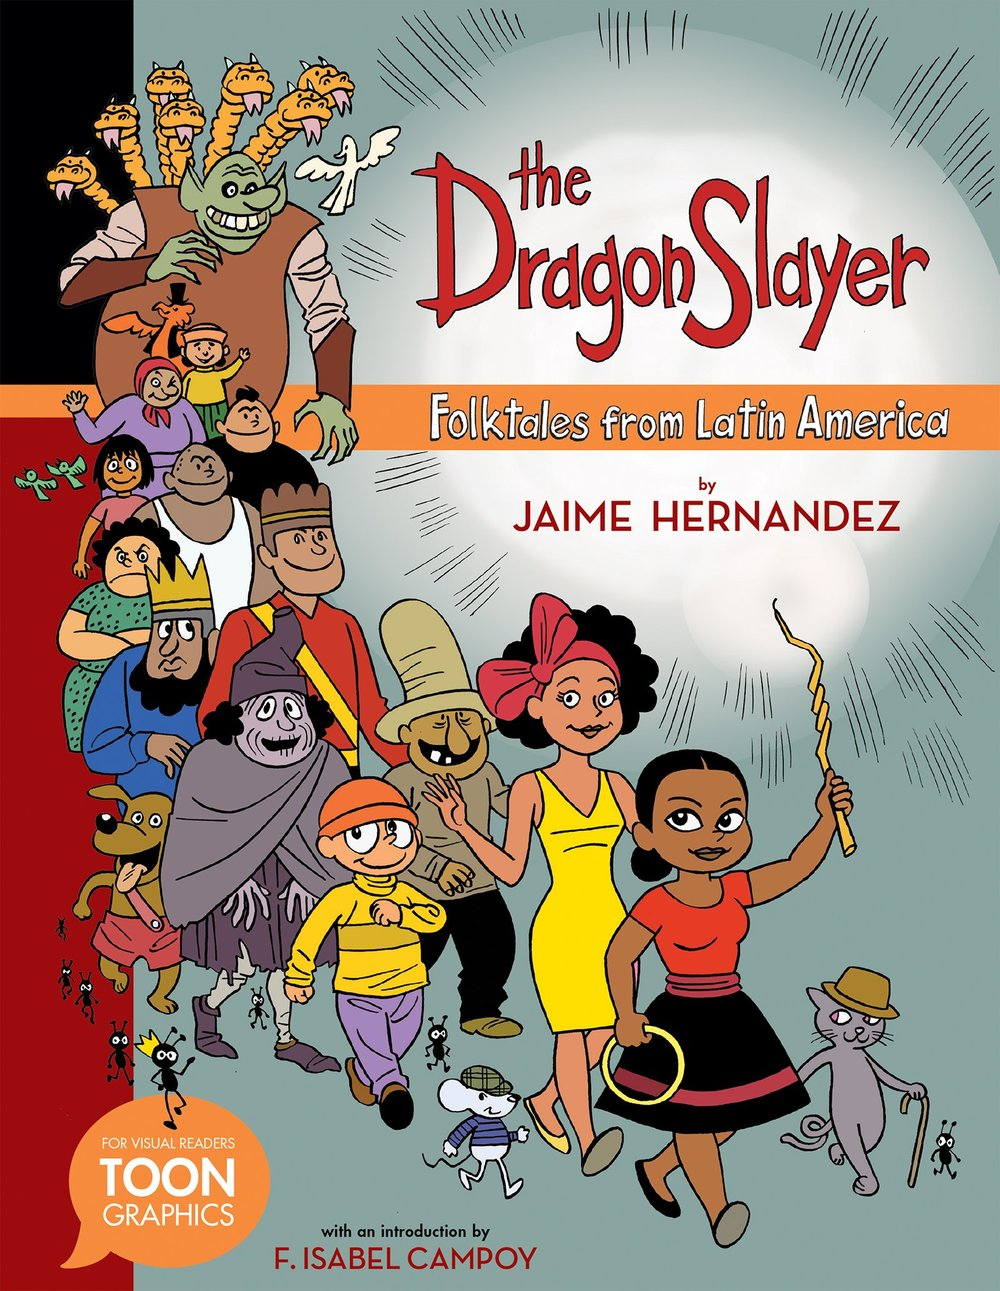 The Dragon Slayer: Folktales from Latin America , by Jaime Hernandez